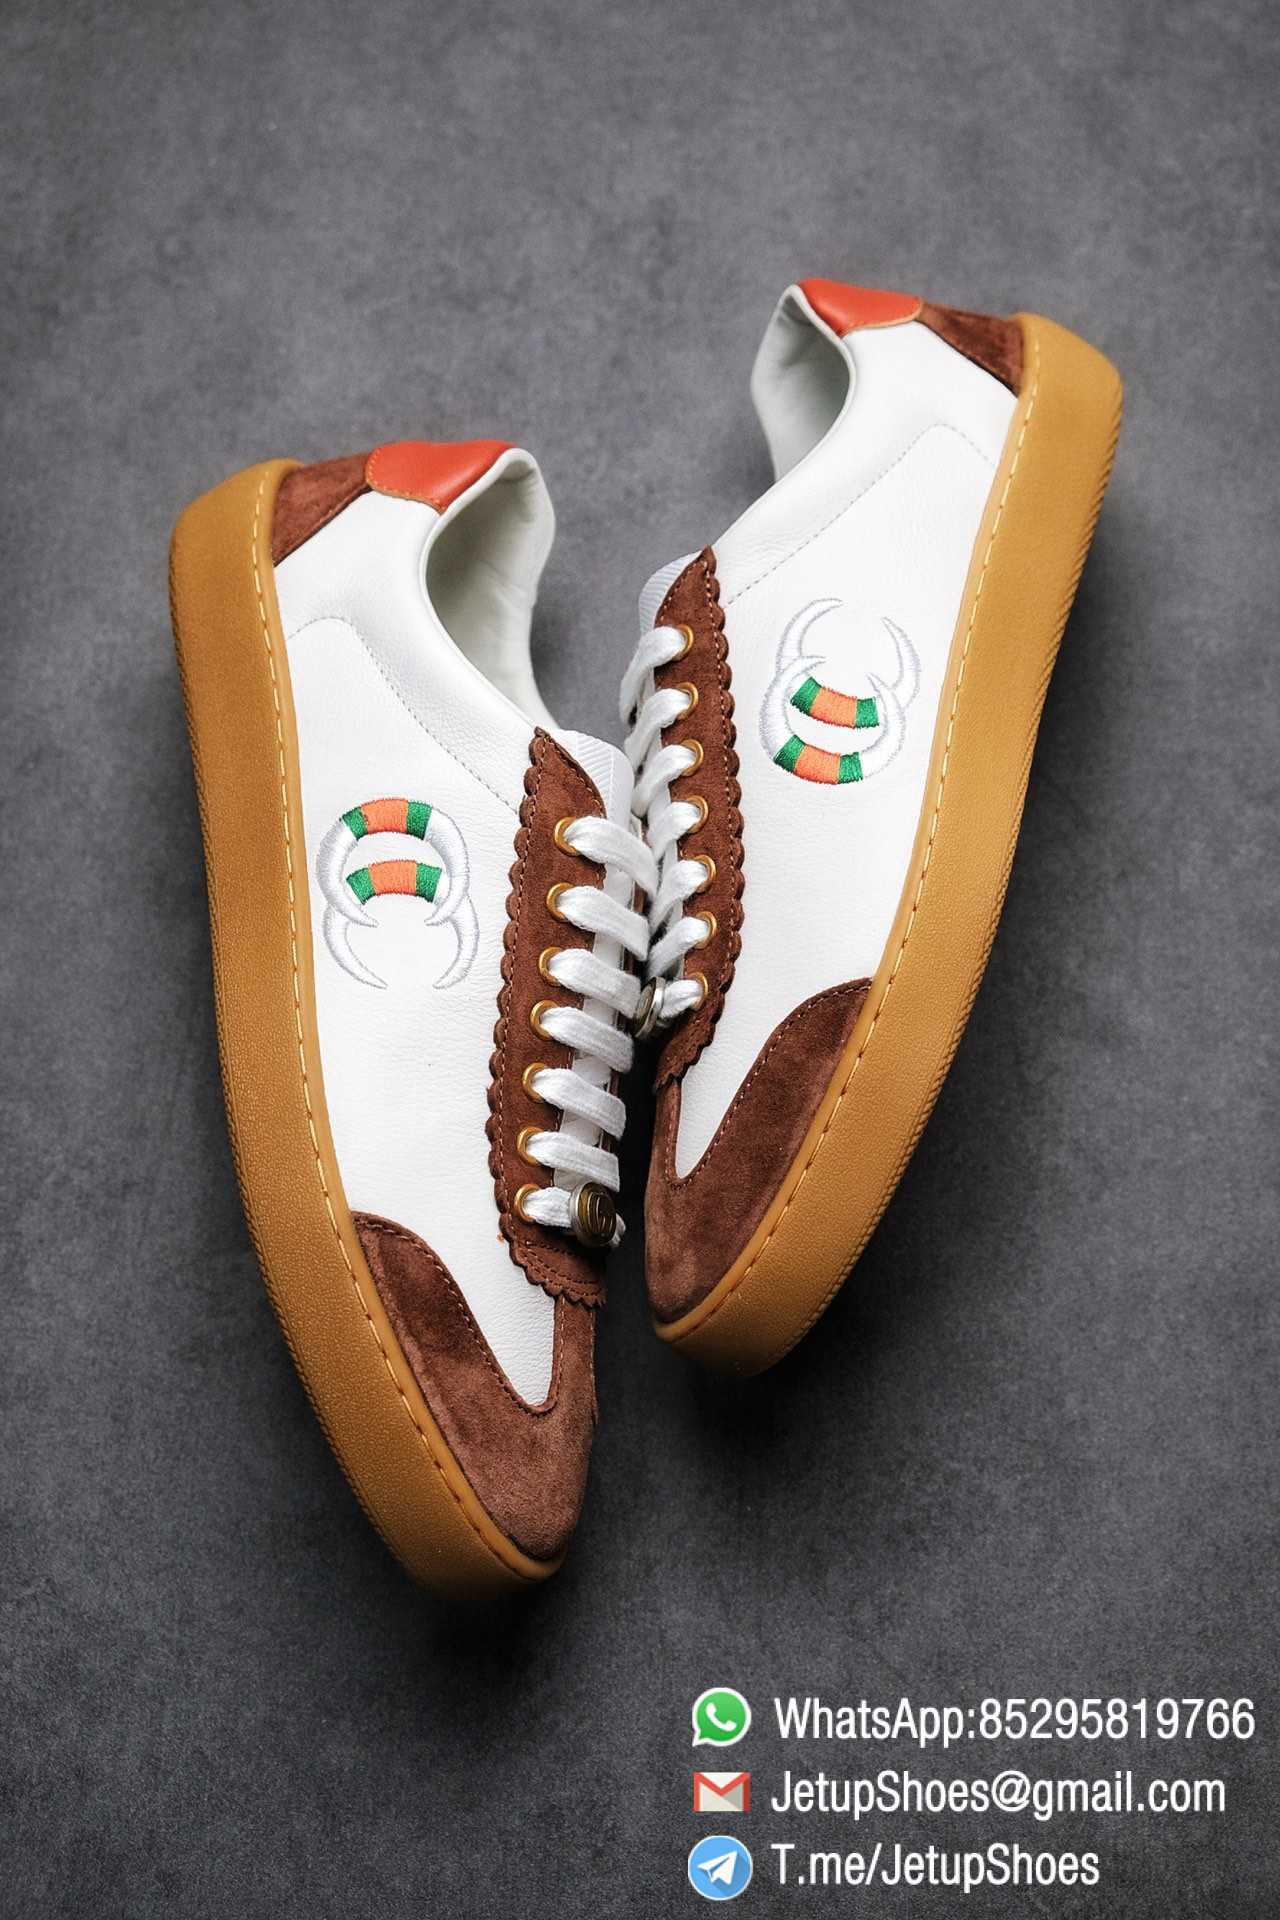 Gucci JBG Leather And Suede Sneaker Brown White Upper Lace Guard White Green Red Embroidered GG Rubber Sole 08